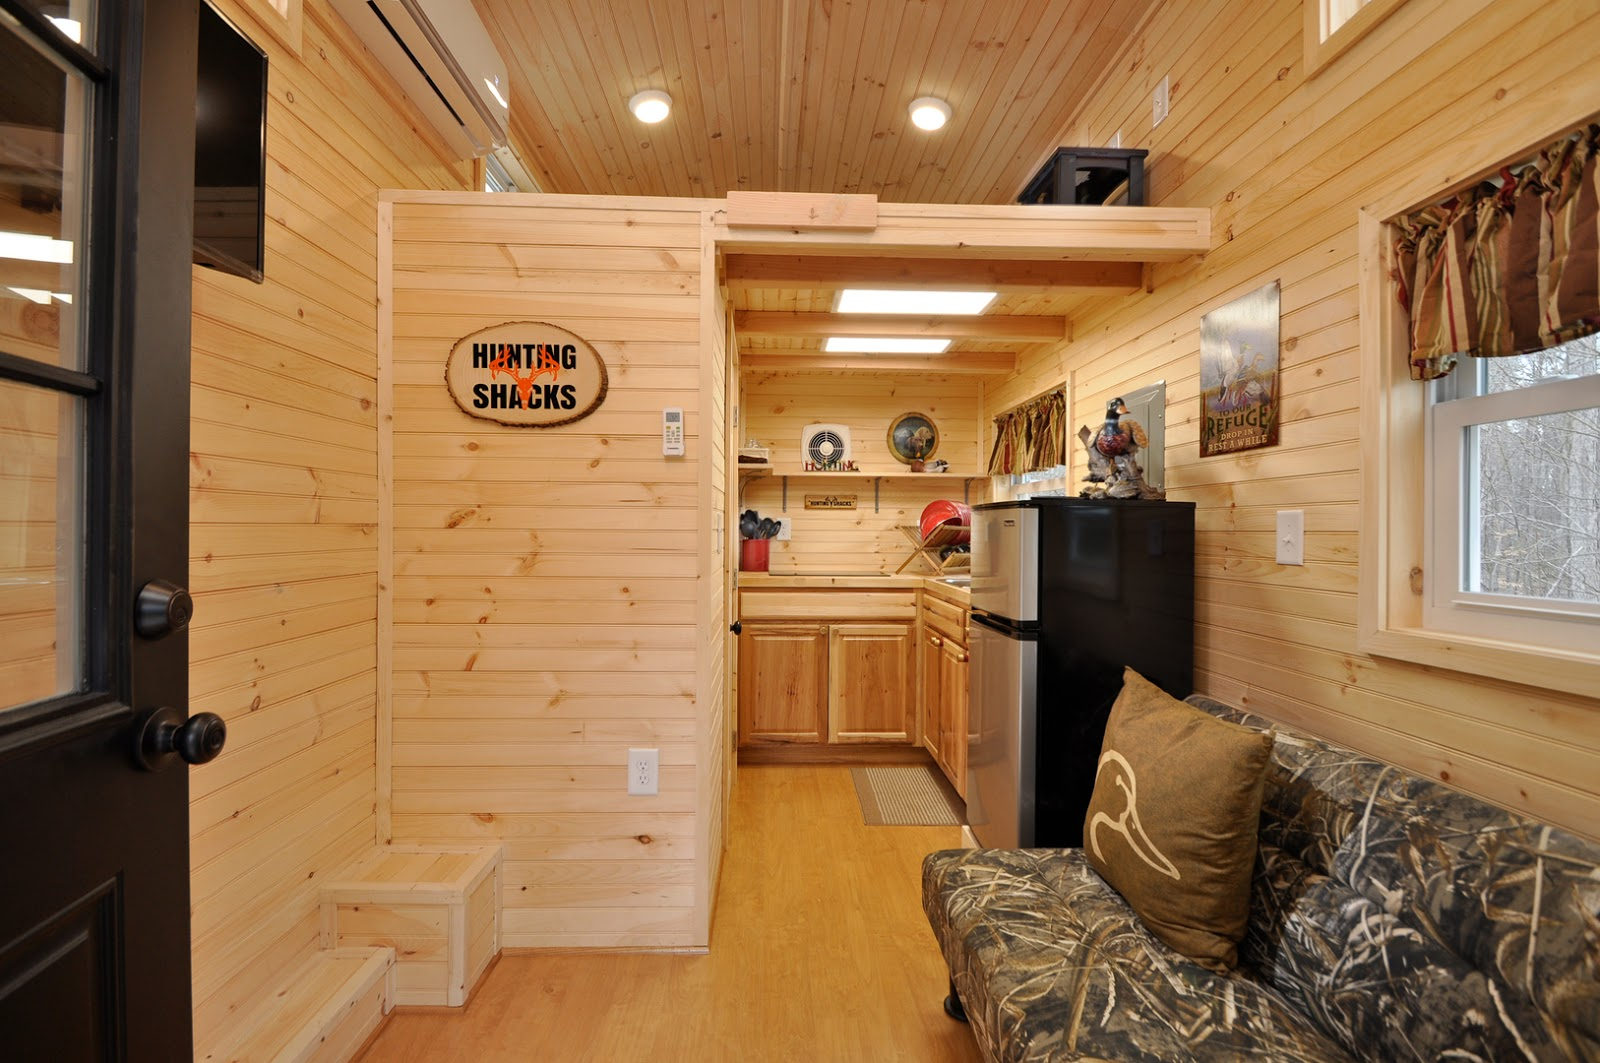 Tiny house building co llc february 2017 for Richmond home and garden show 2017